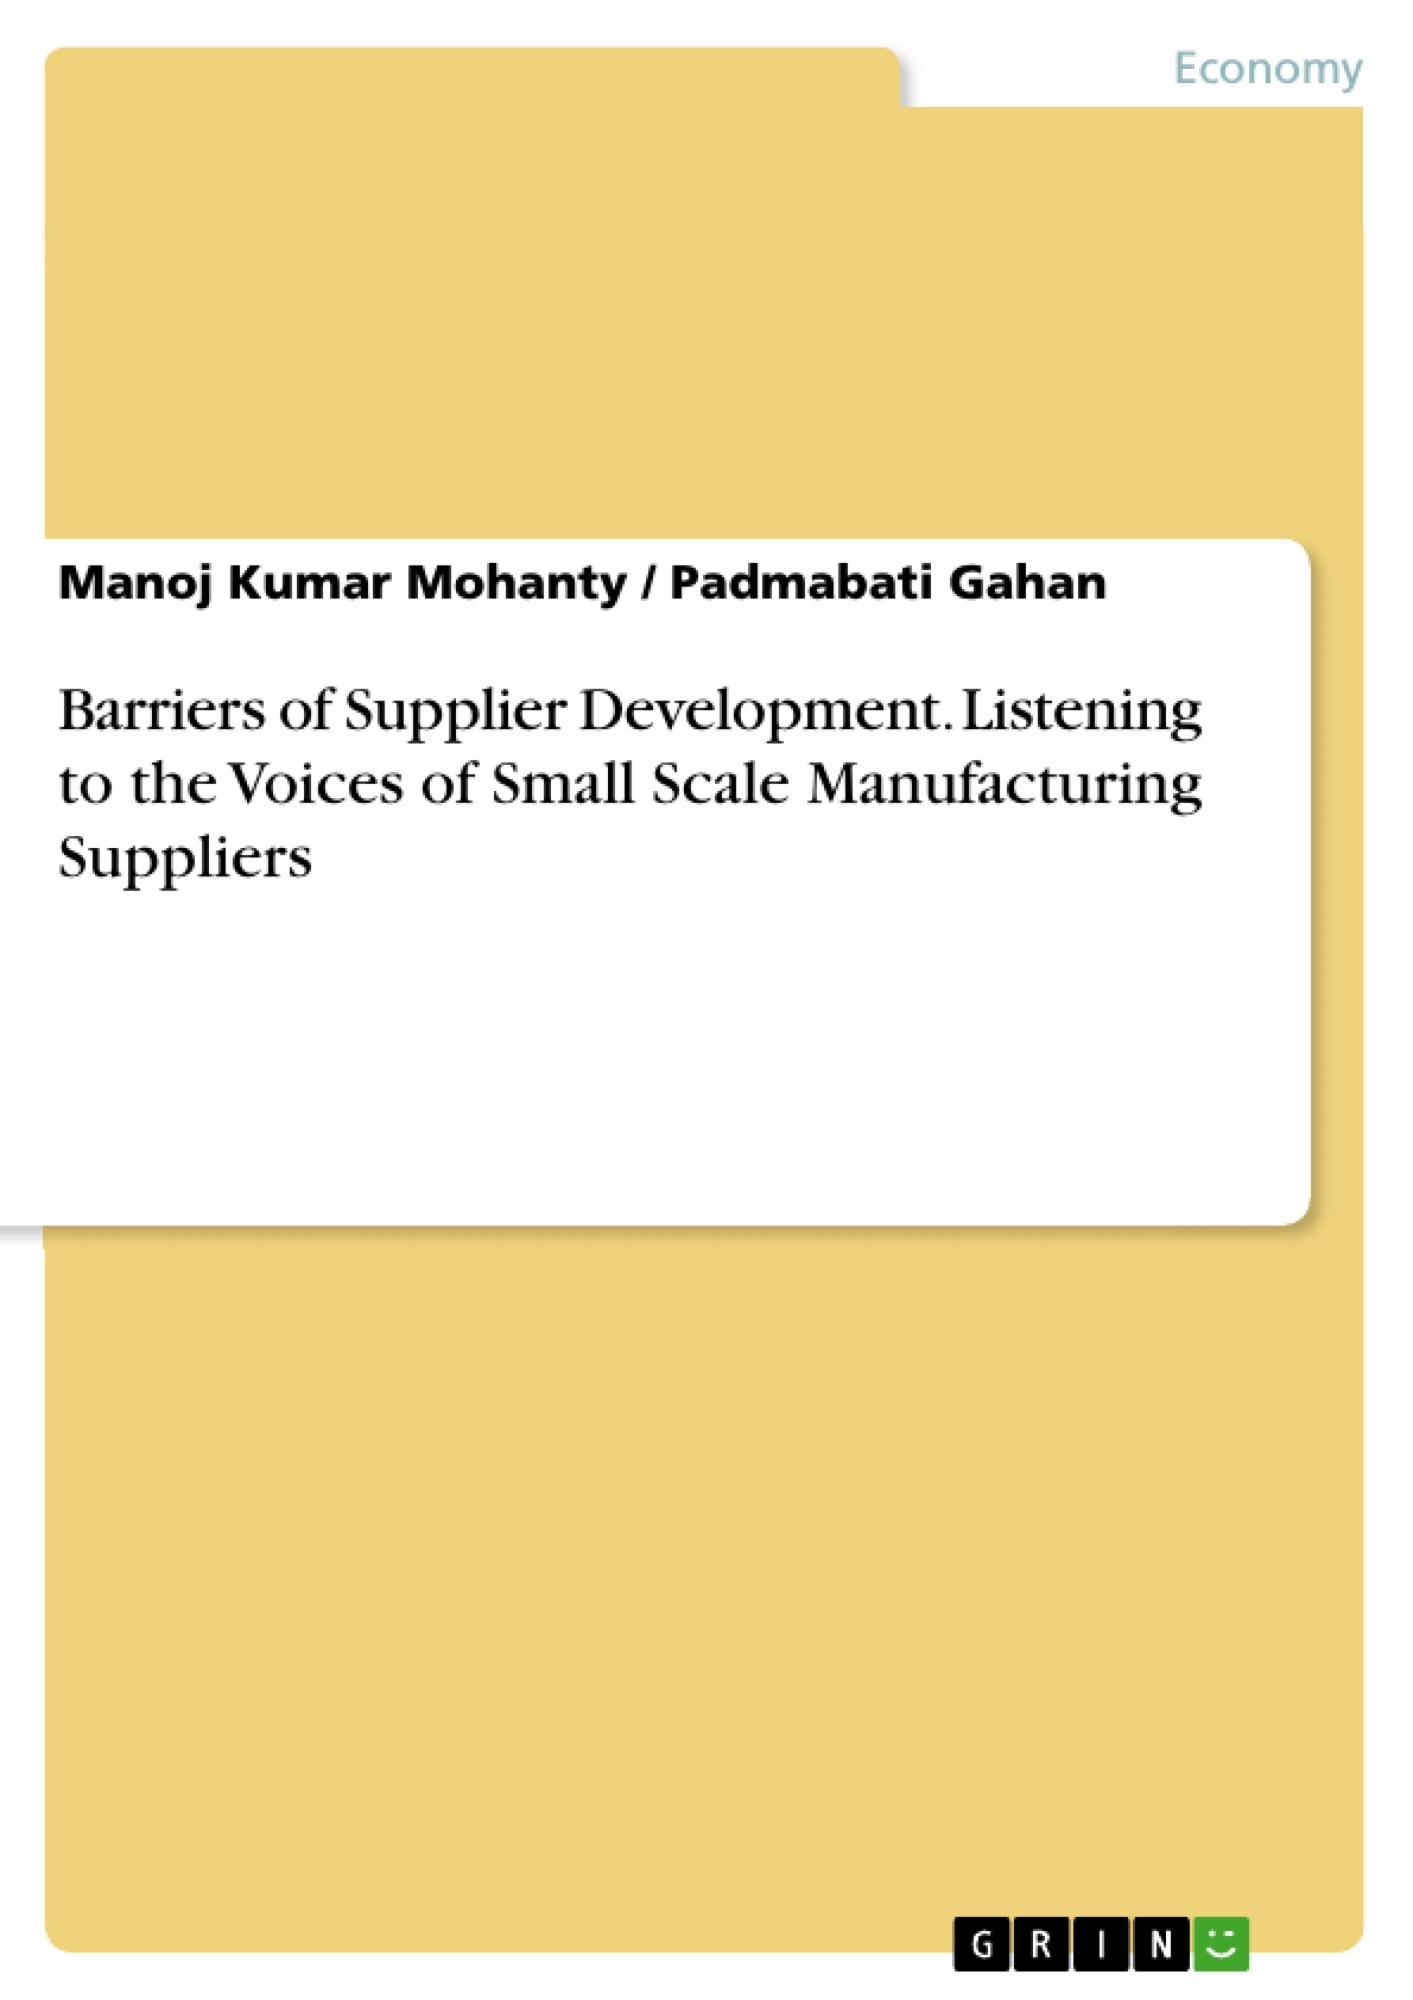 Title: Barriers of Supplier Development. Listening to the Voices of Small Scale Manufacturing Suppliers